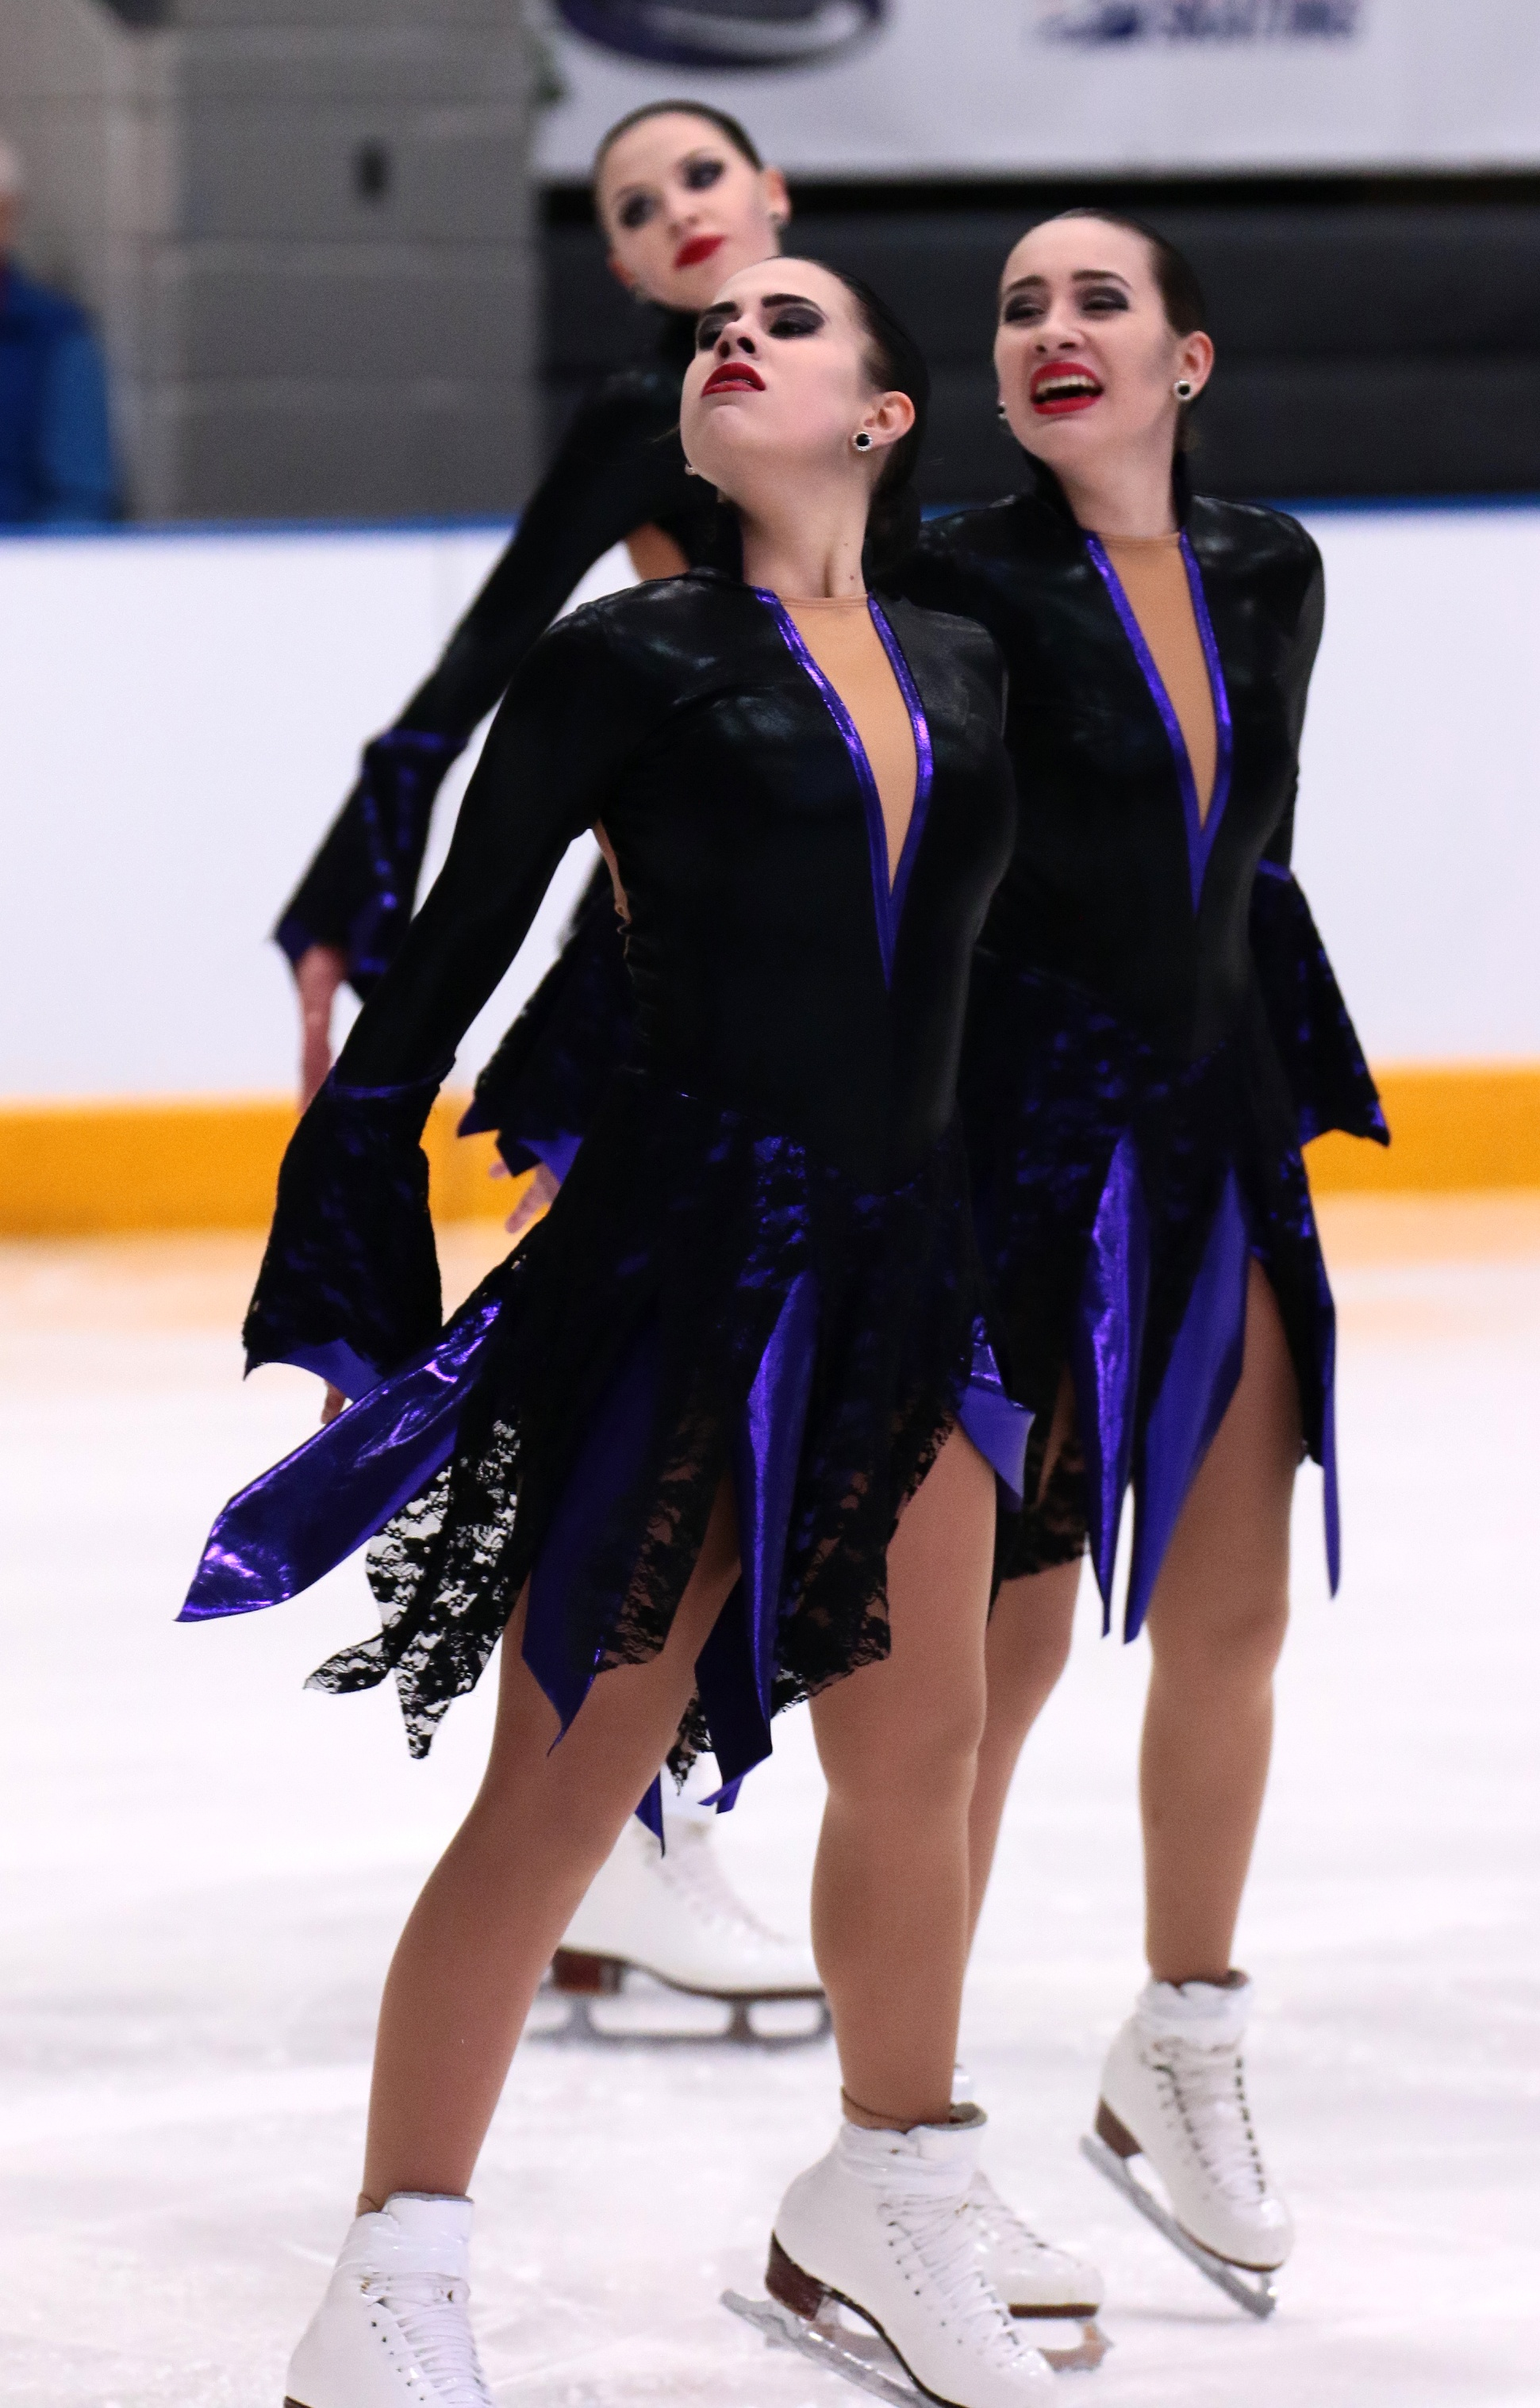 Adams Family or witch theme synchronized skating dress